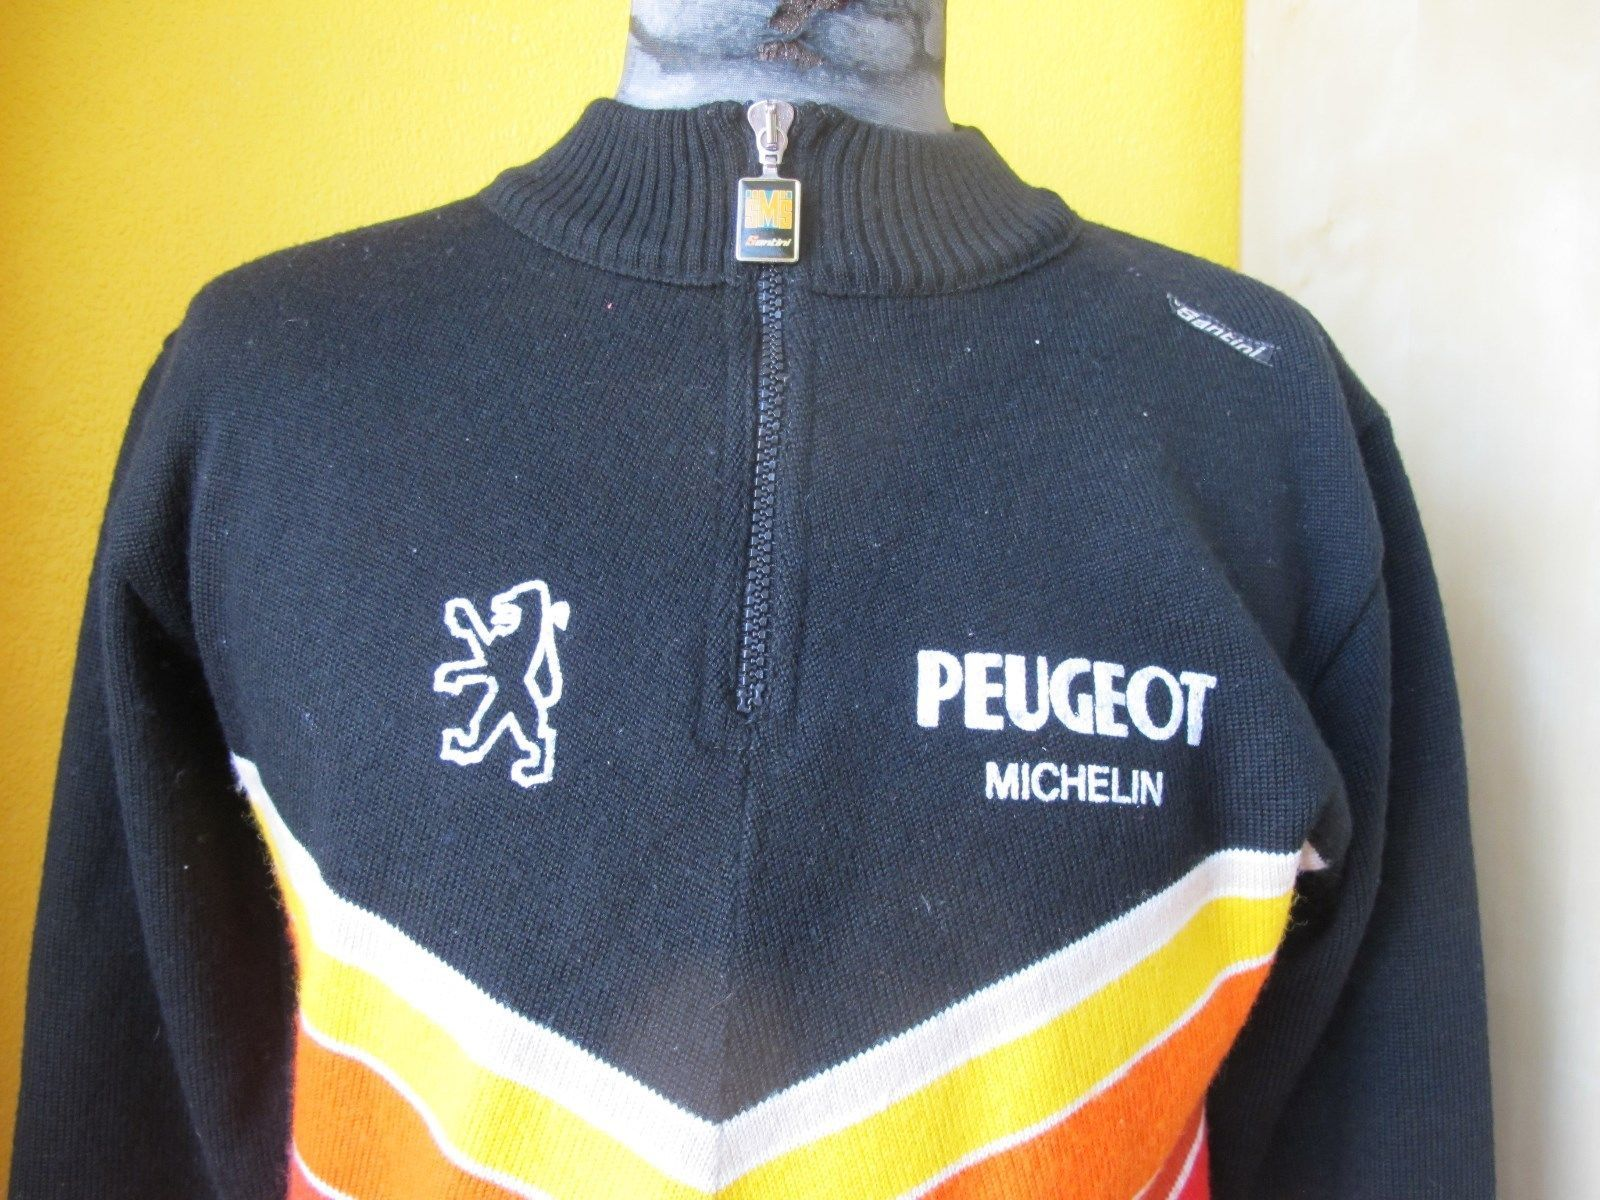 leather pad M size Vintage style Peugeot Michelin cycling shorts merino wool